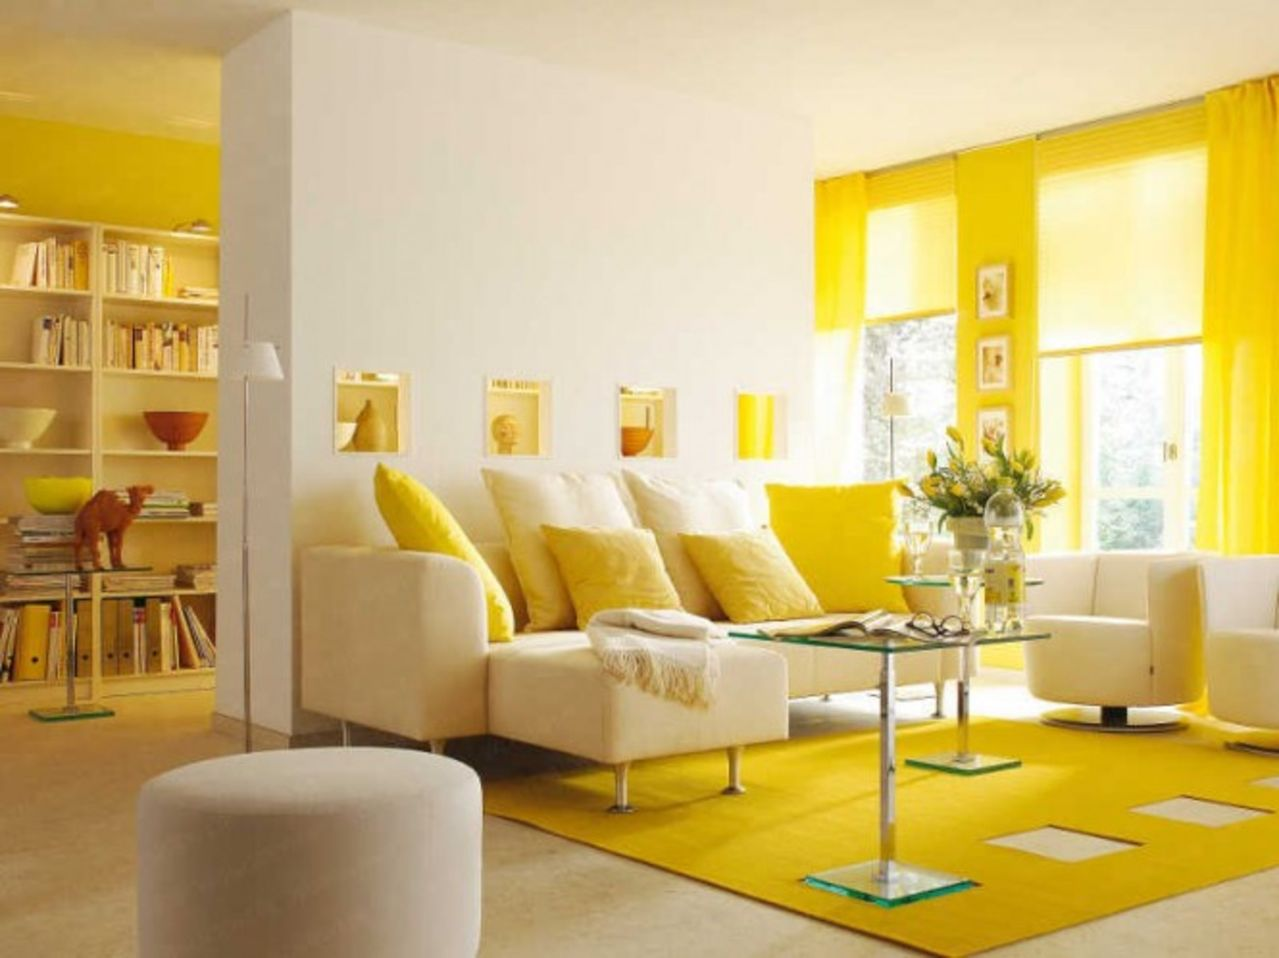 monochrome-decoration-yellow